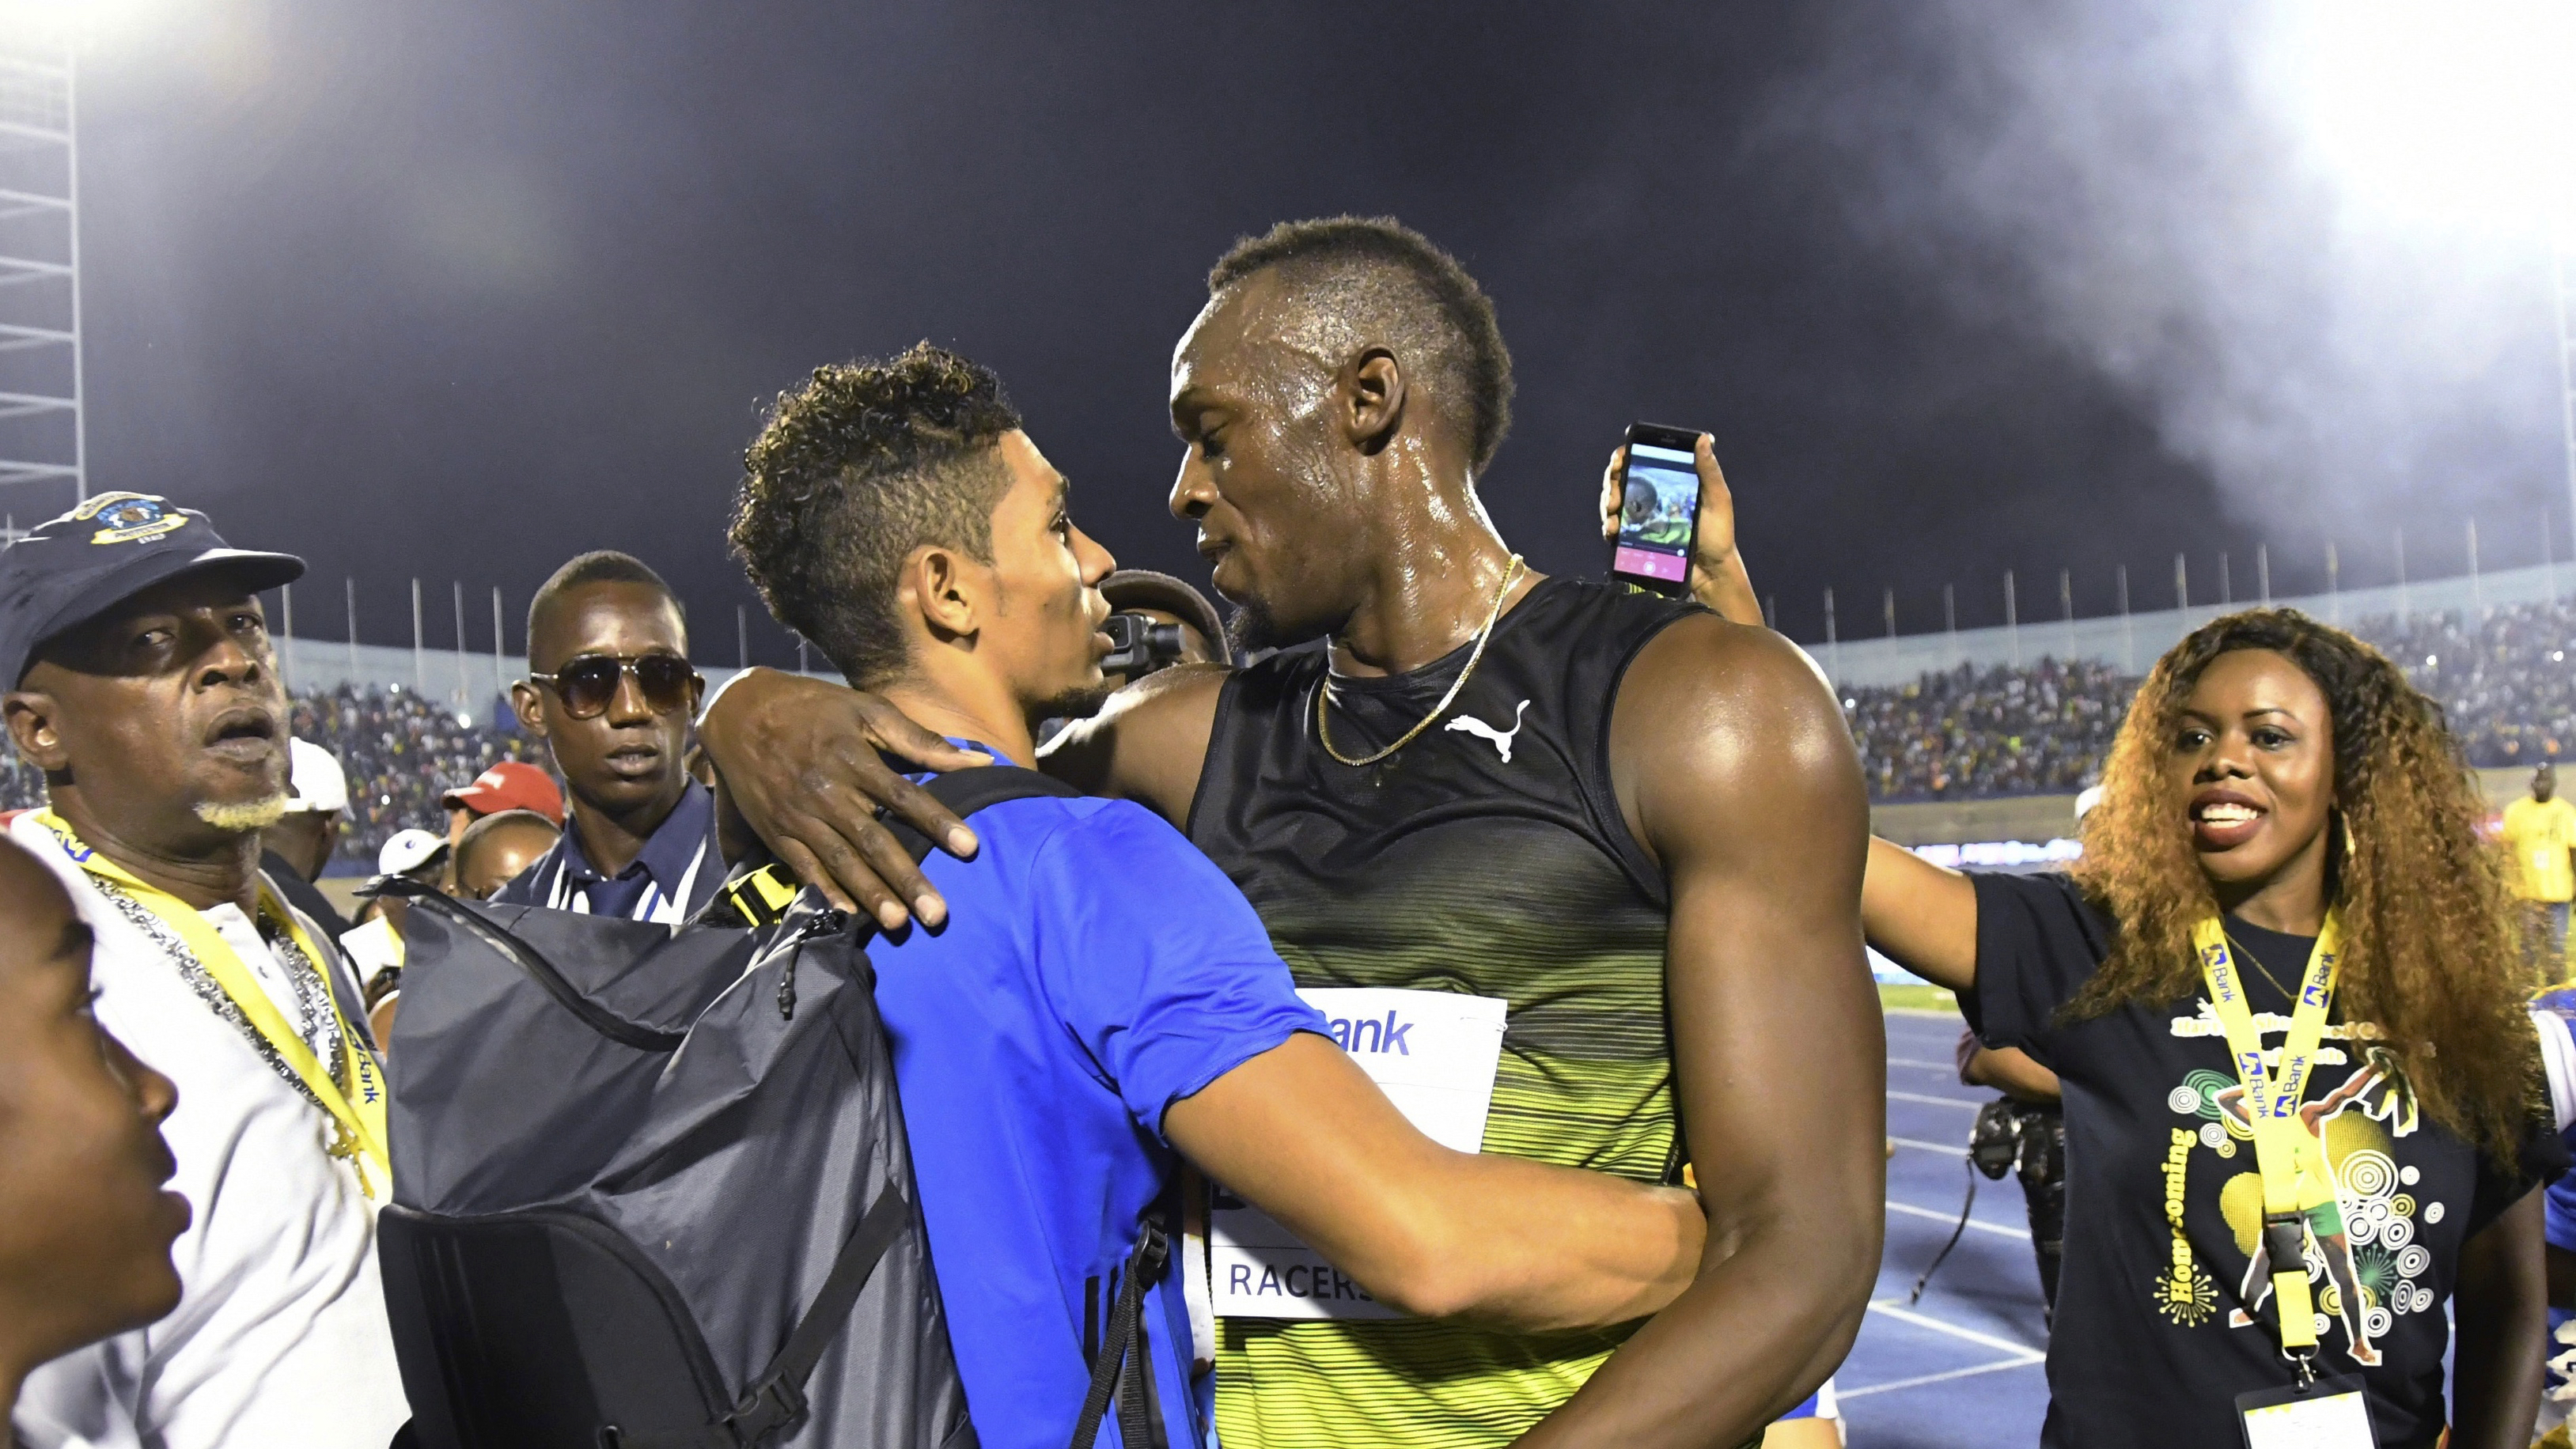 As Usain Bolt prepares to retire, South African sprinter Wayde van Niekerk is poised to become the next athletics superstar